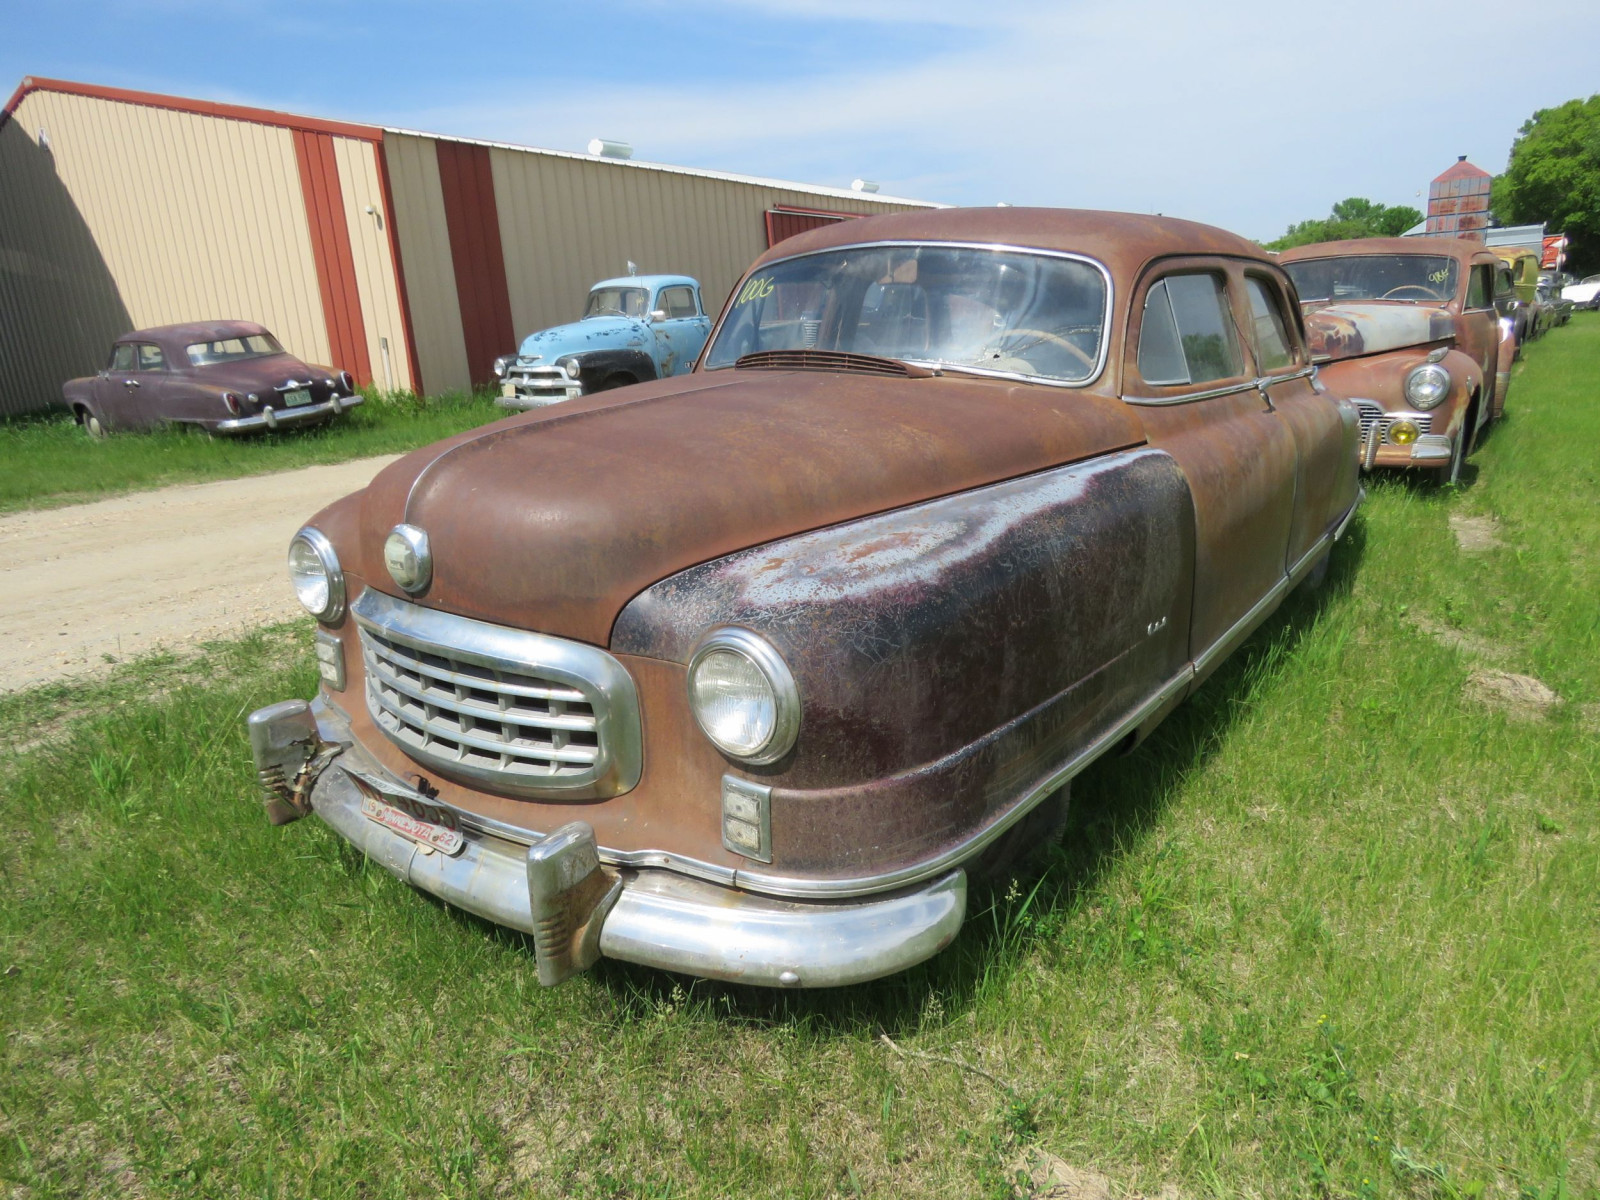 1949 Nash 4dr Sedan - Image 3